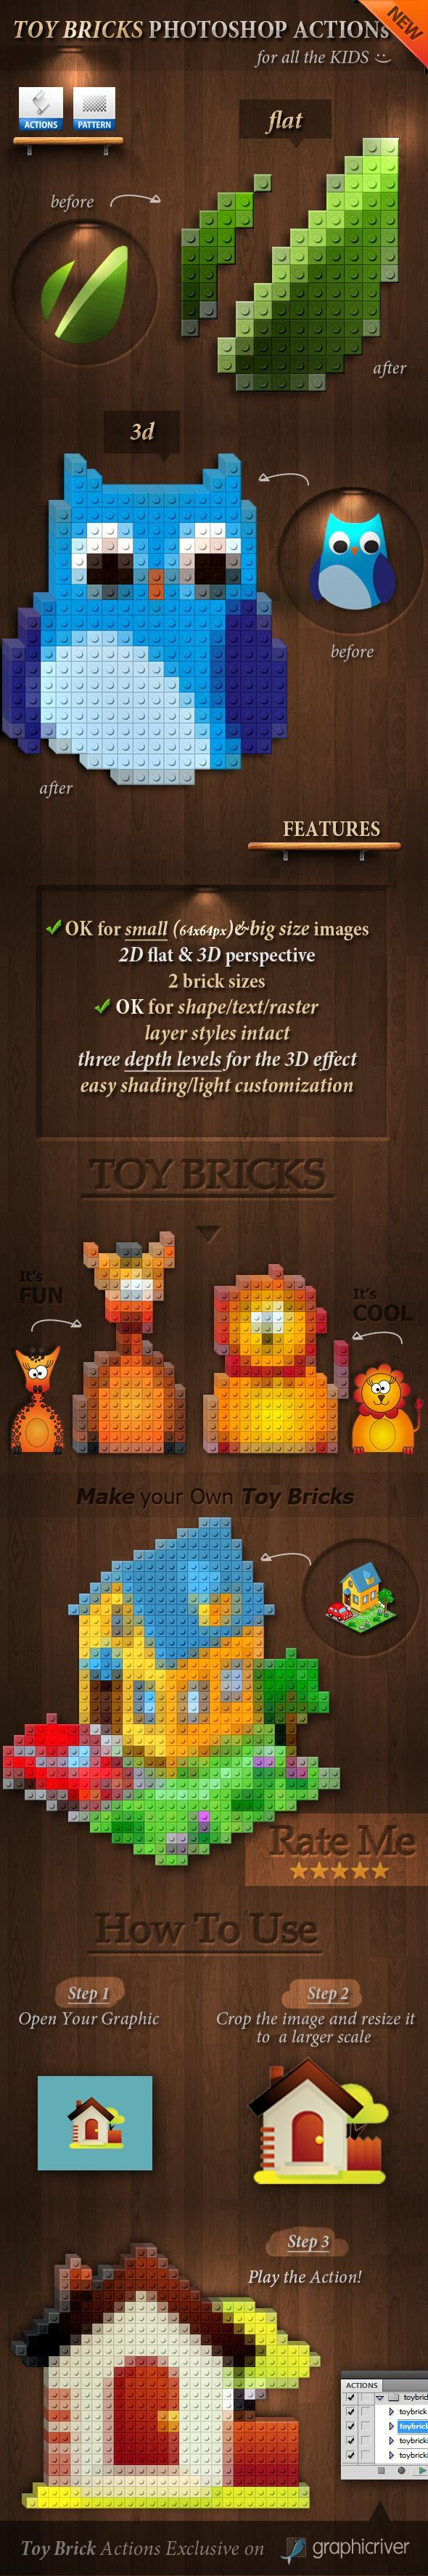 3D Toy Bricks Photoshop Actions - Utilities Actions